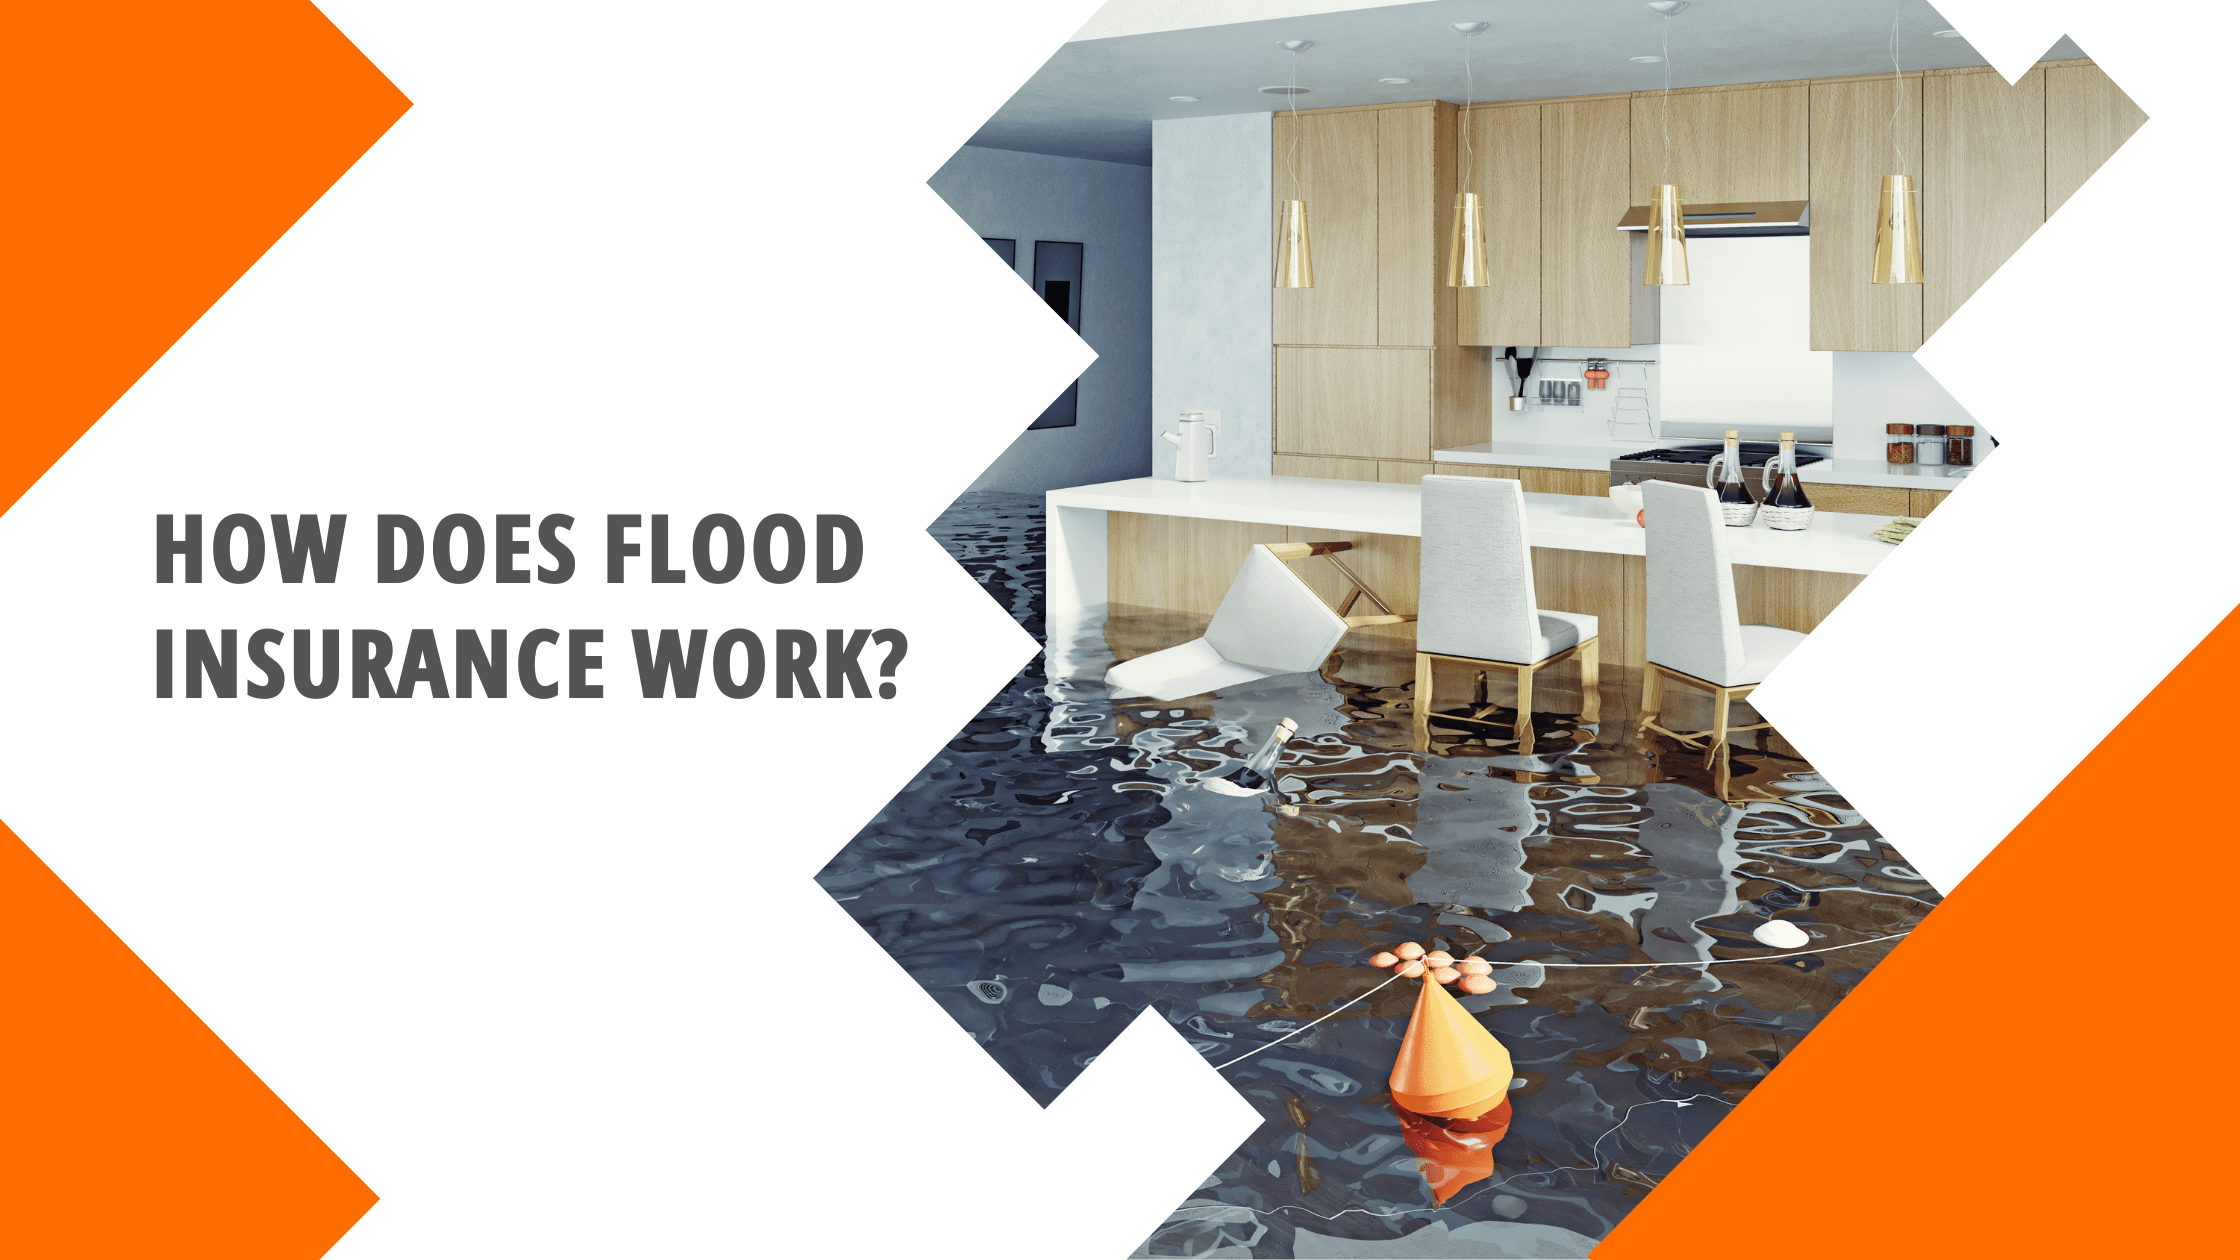 How does flood insurance work?